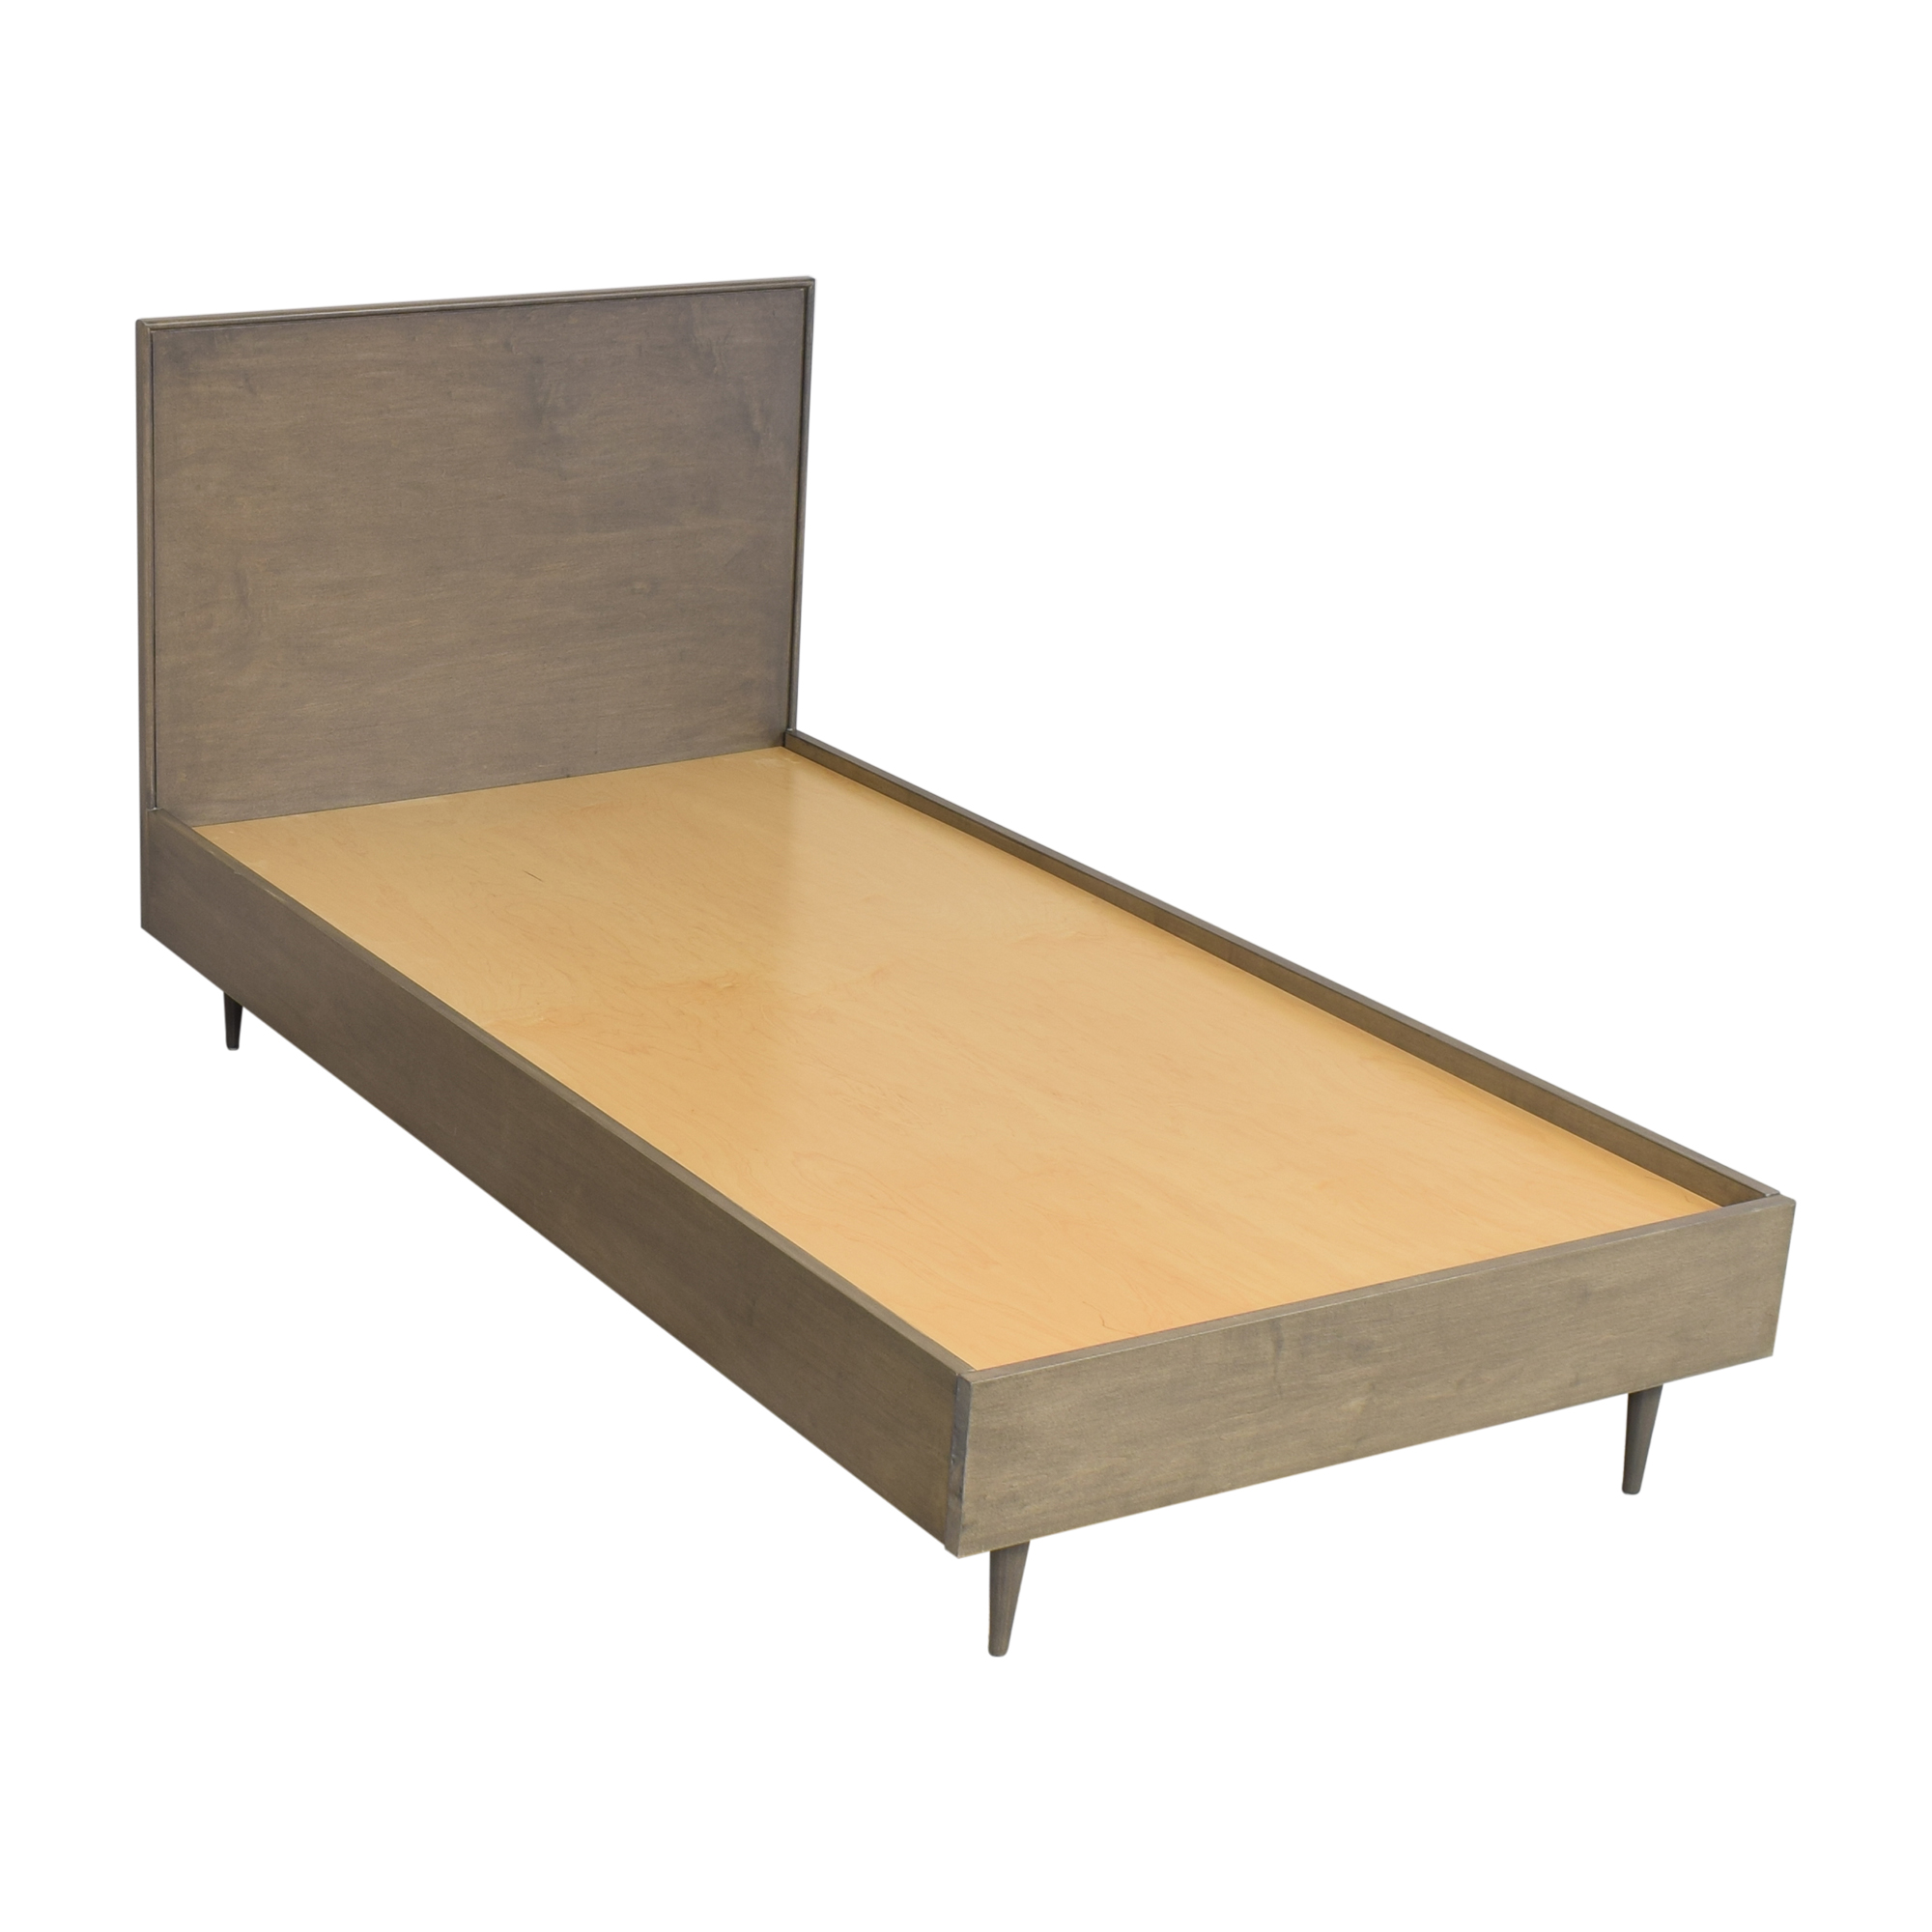 Urbangreen Furniture Urbangreen Midcentury Platform Twin Bed price